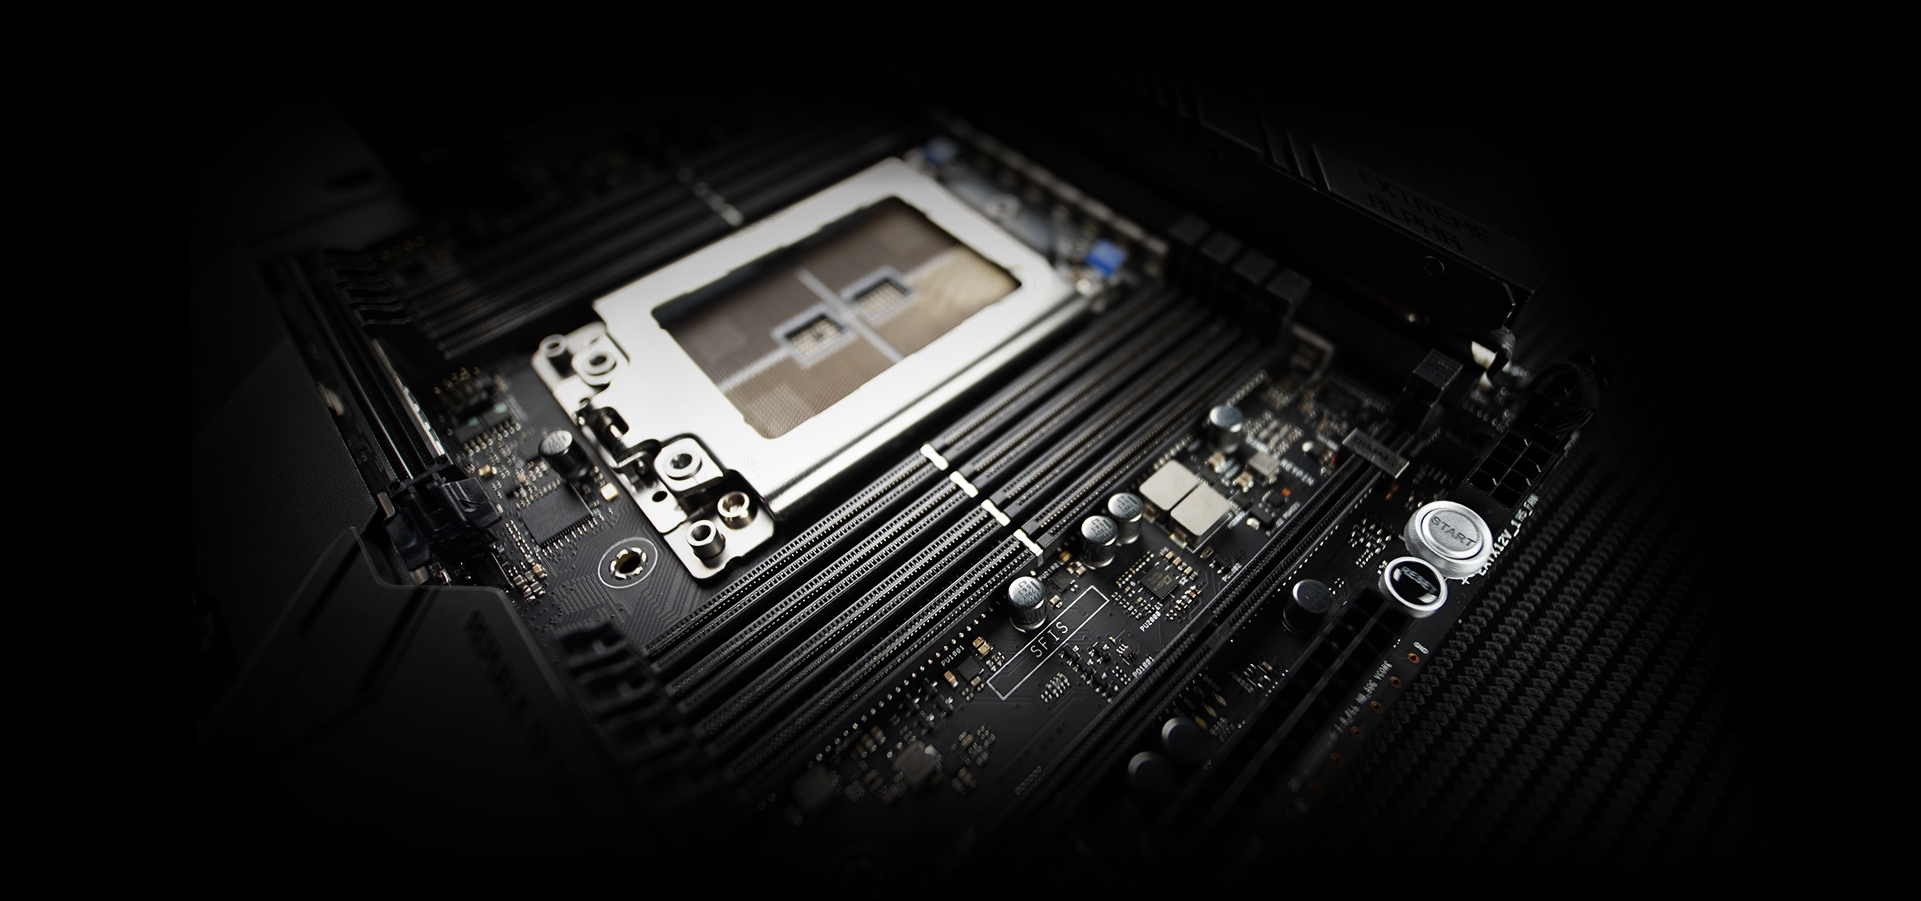 ROG Zenith Extreme Alpha | ROG - Republic Of Gamers | ASUS USA